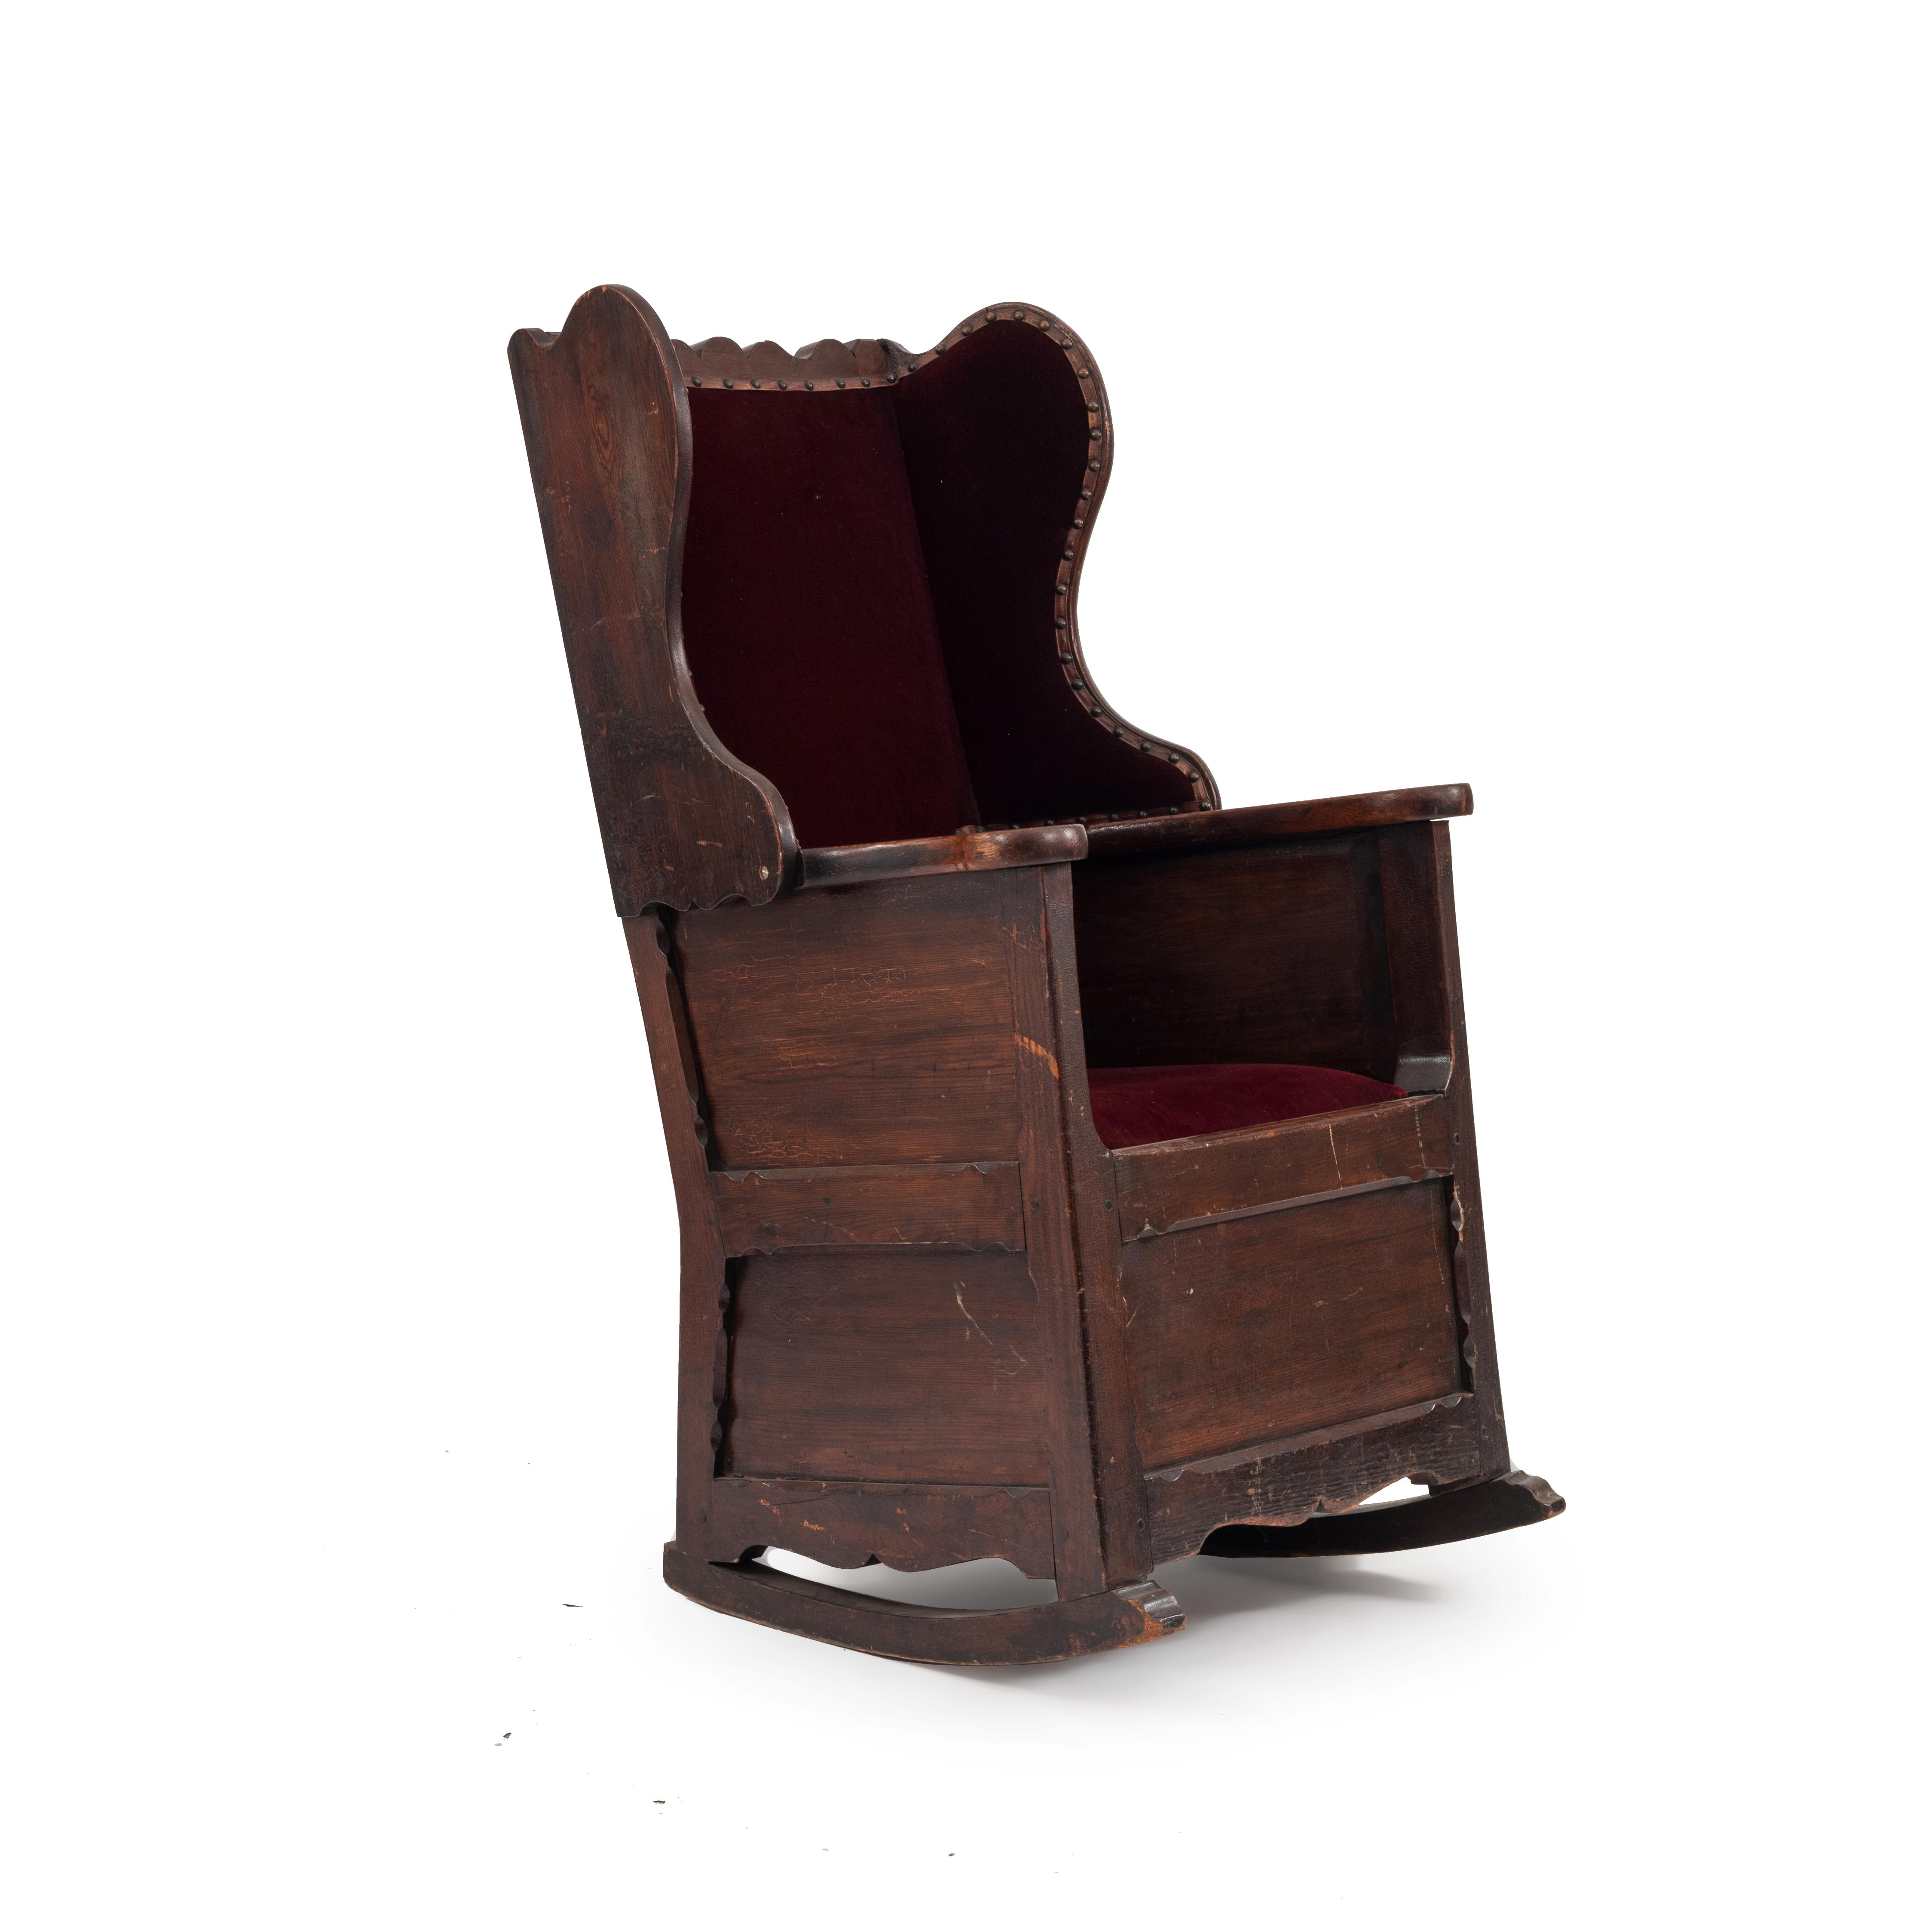 ... rocking chair -> pine in stock $ 9500.00 - English Country (18/19th Cent) Antique Winged Back Pine Rocking